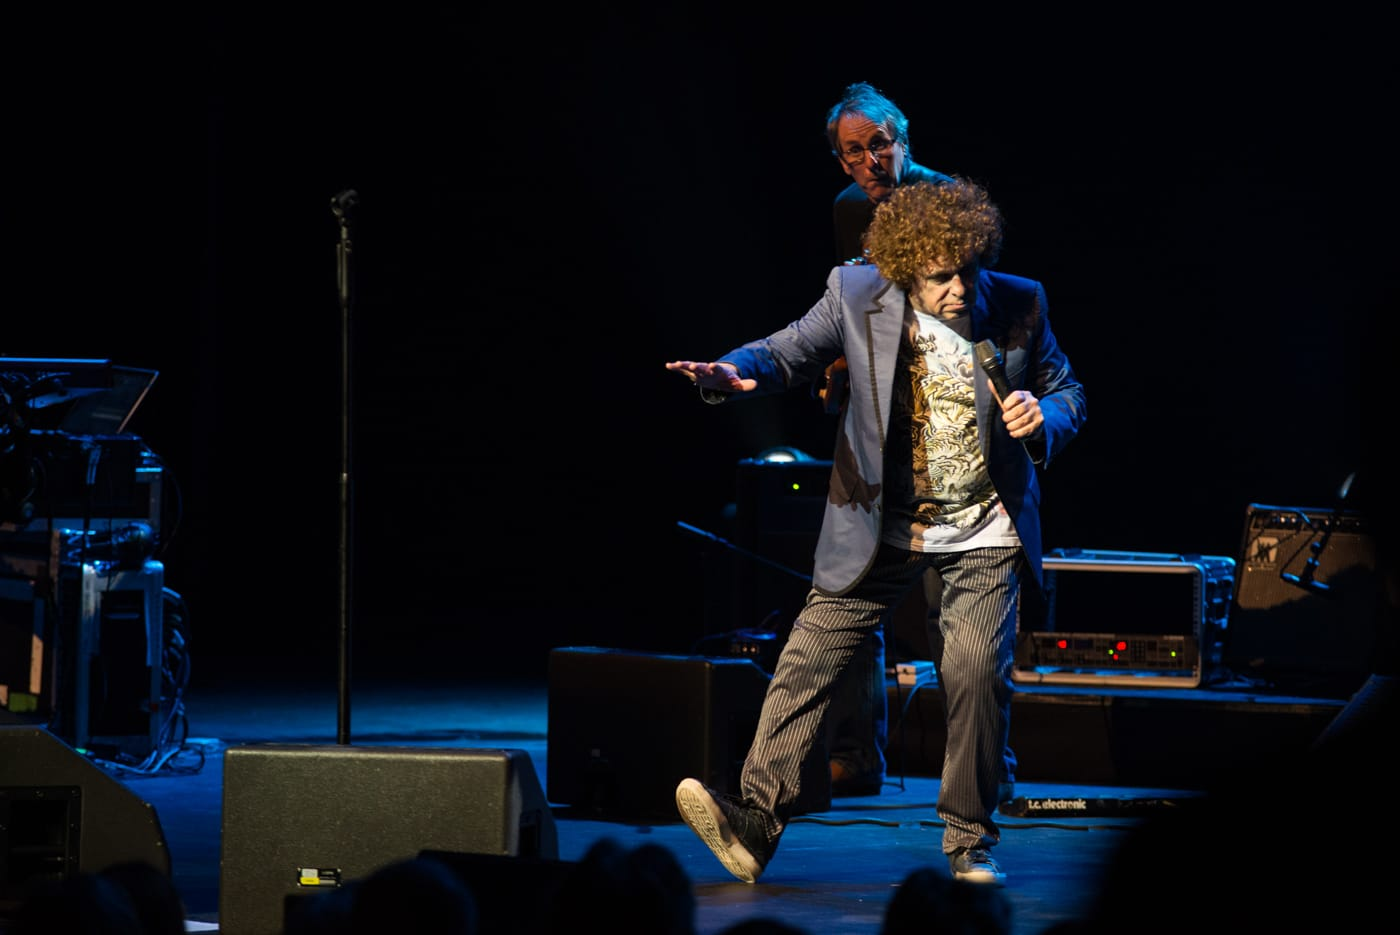 Leo Sayer at Bord Gais Energy Theatre by Sean Smyth (16-10-15) (32 of 129)